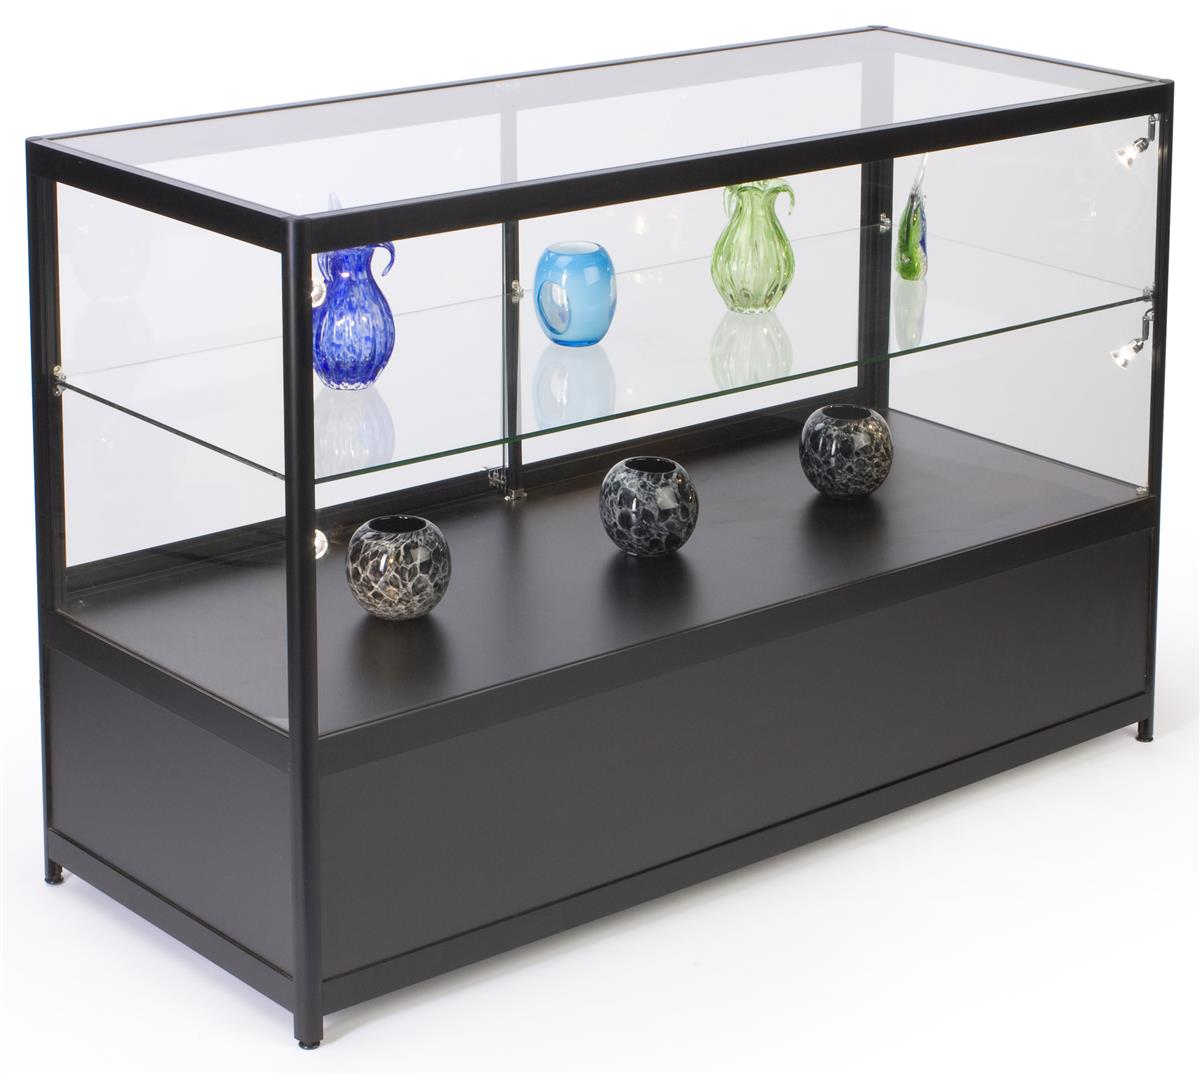 Phenomenal 60 Retail Display Case W Storage Led Side Lights Sliding Door Black Download Free Architecture Designs Embacsunscenecom